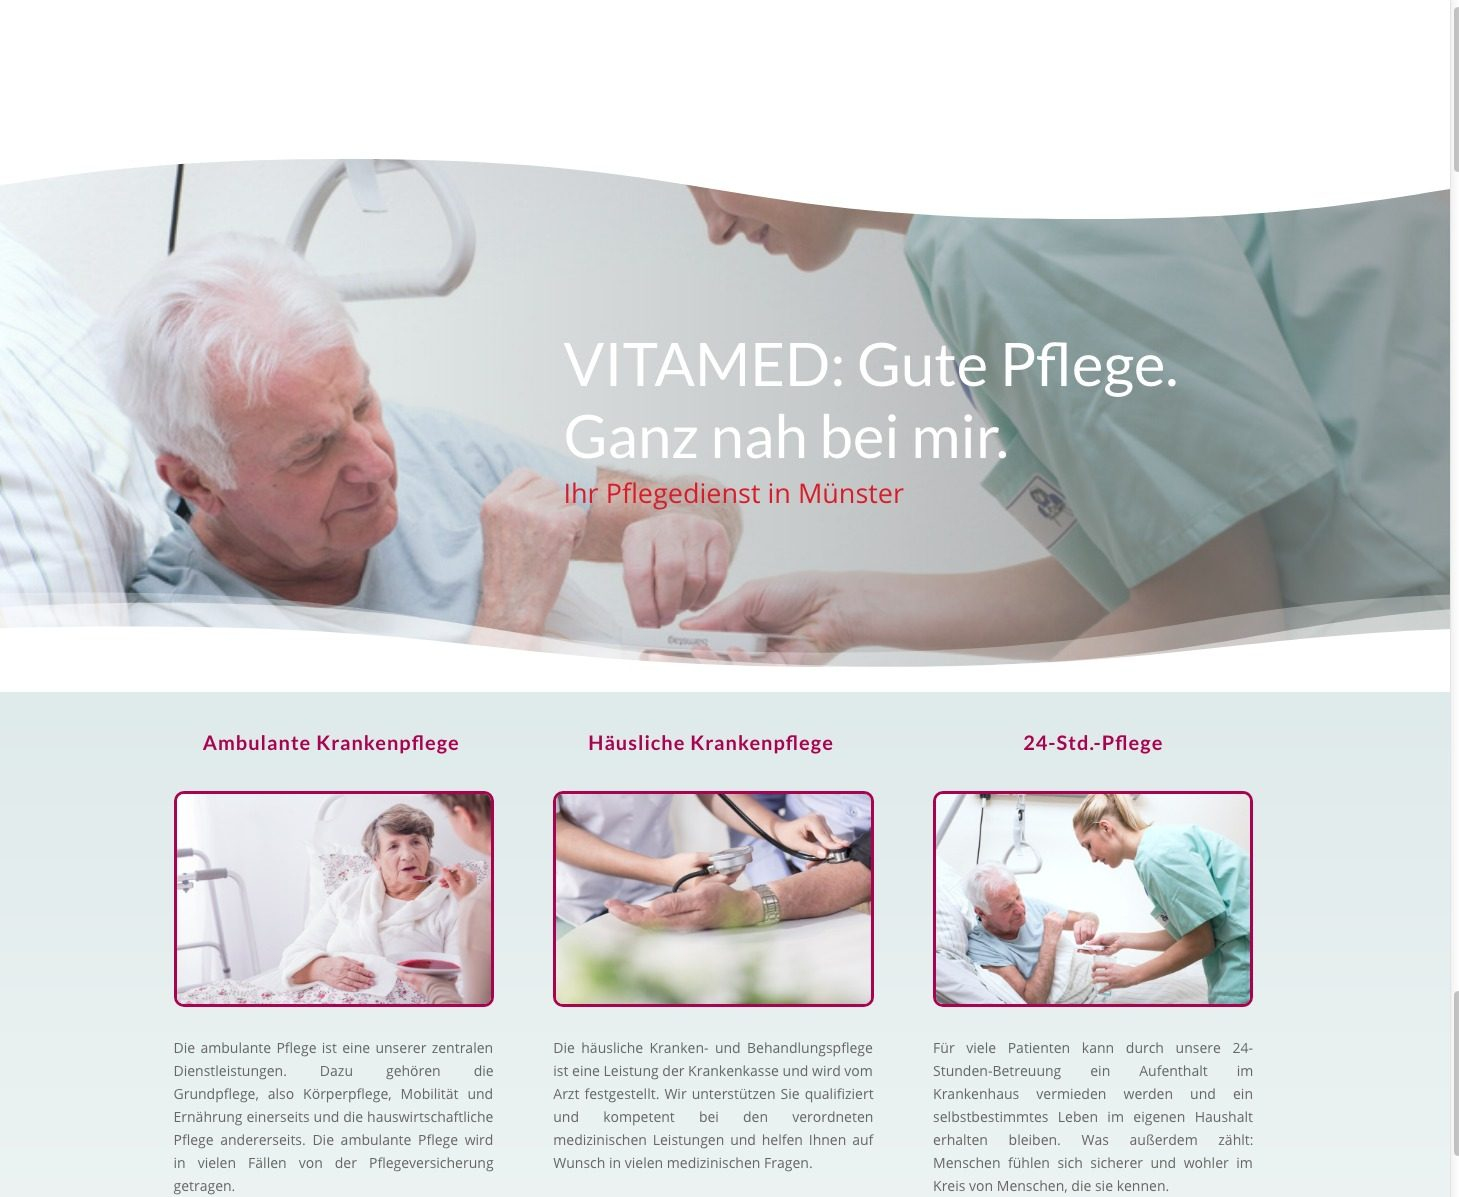 VITAMED Pflegedienst 2016